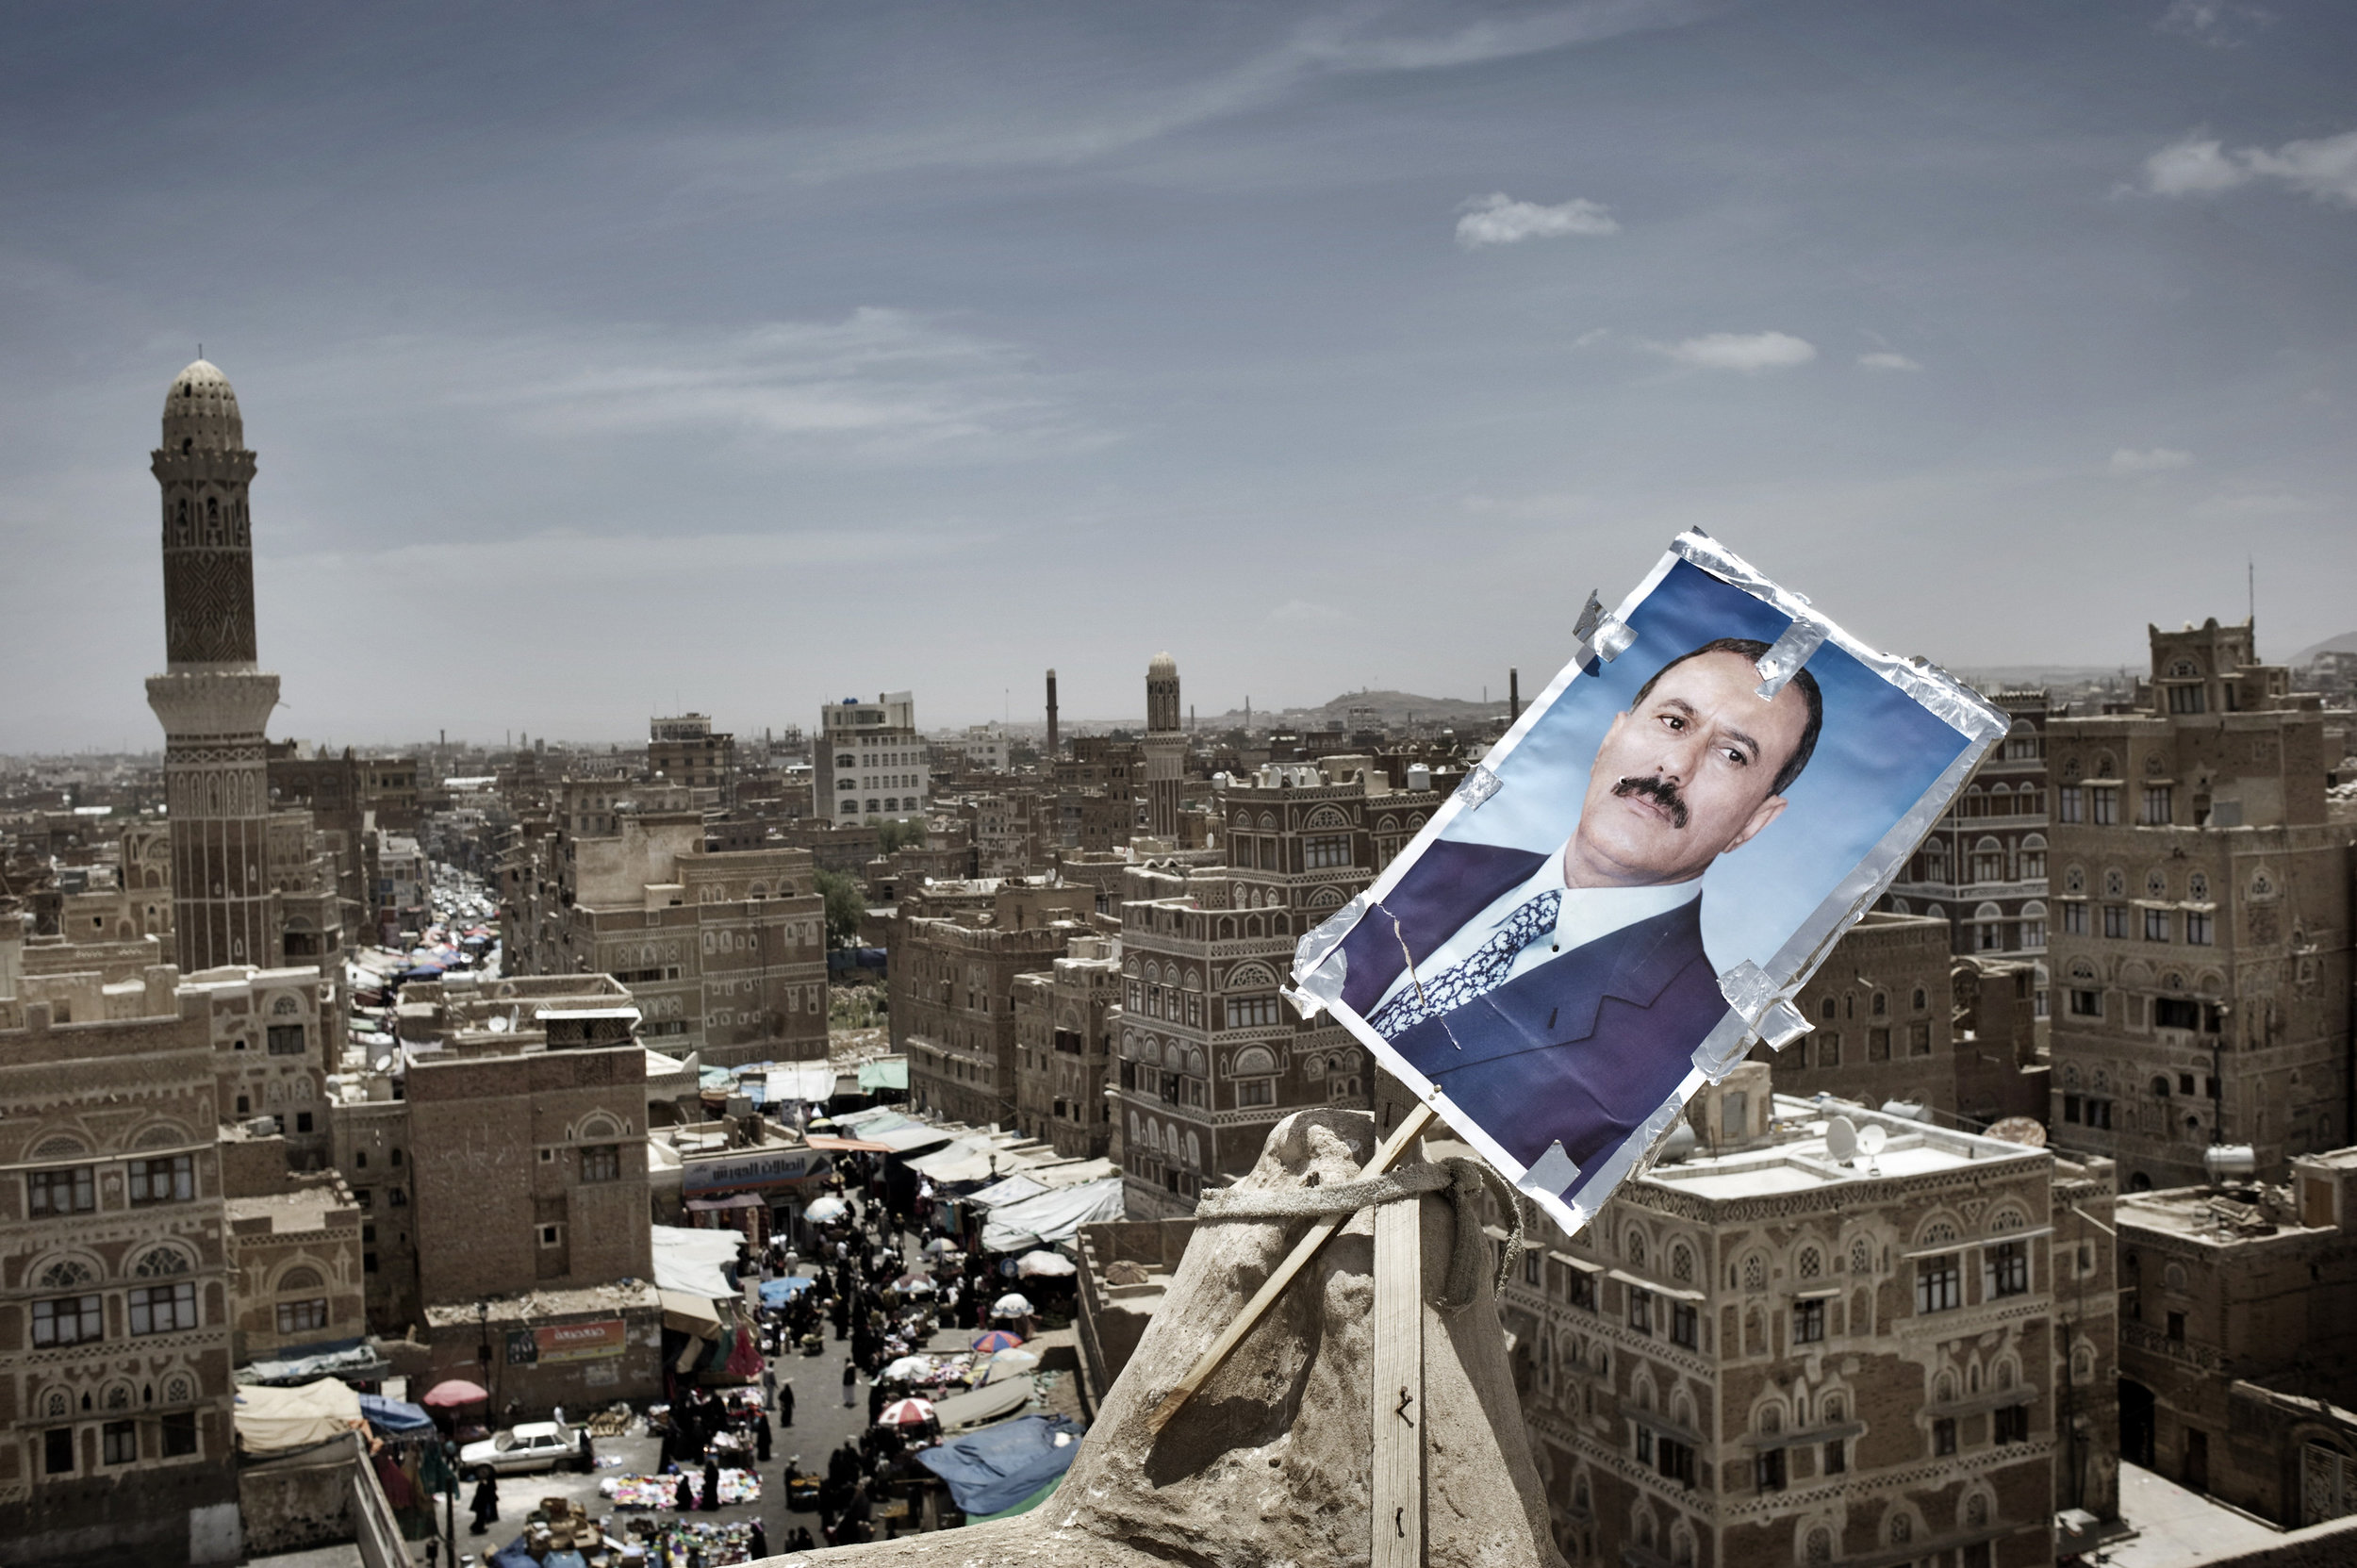 SANAA YEMEN-- MAY 2011:   A poster of Yemen's President Ali Abdullah Saleh   is seen  at  the  roof  of  the  house  at  the old  town  of Sanaa